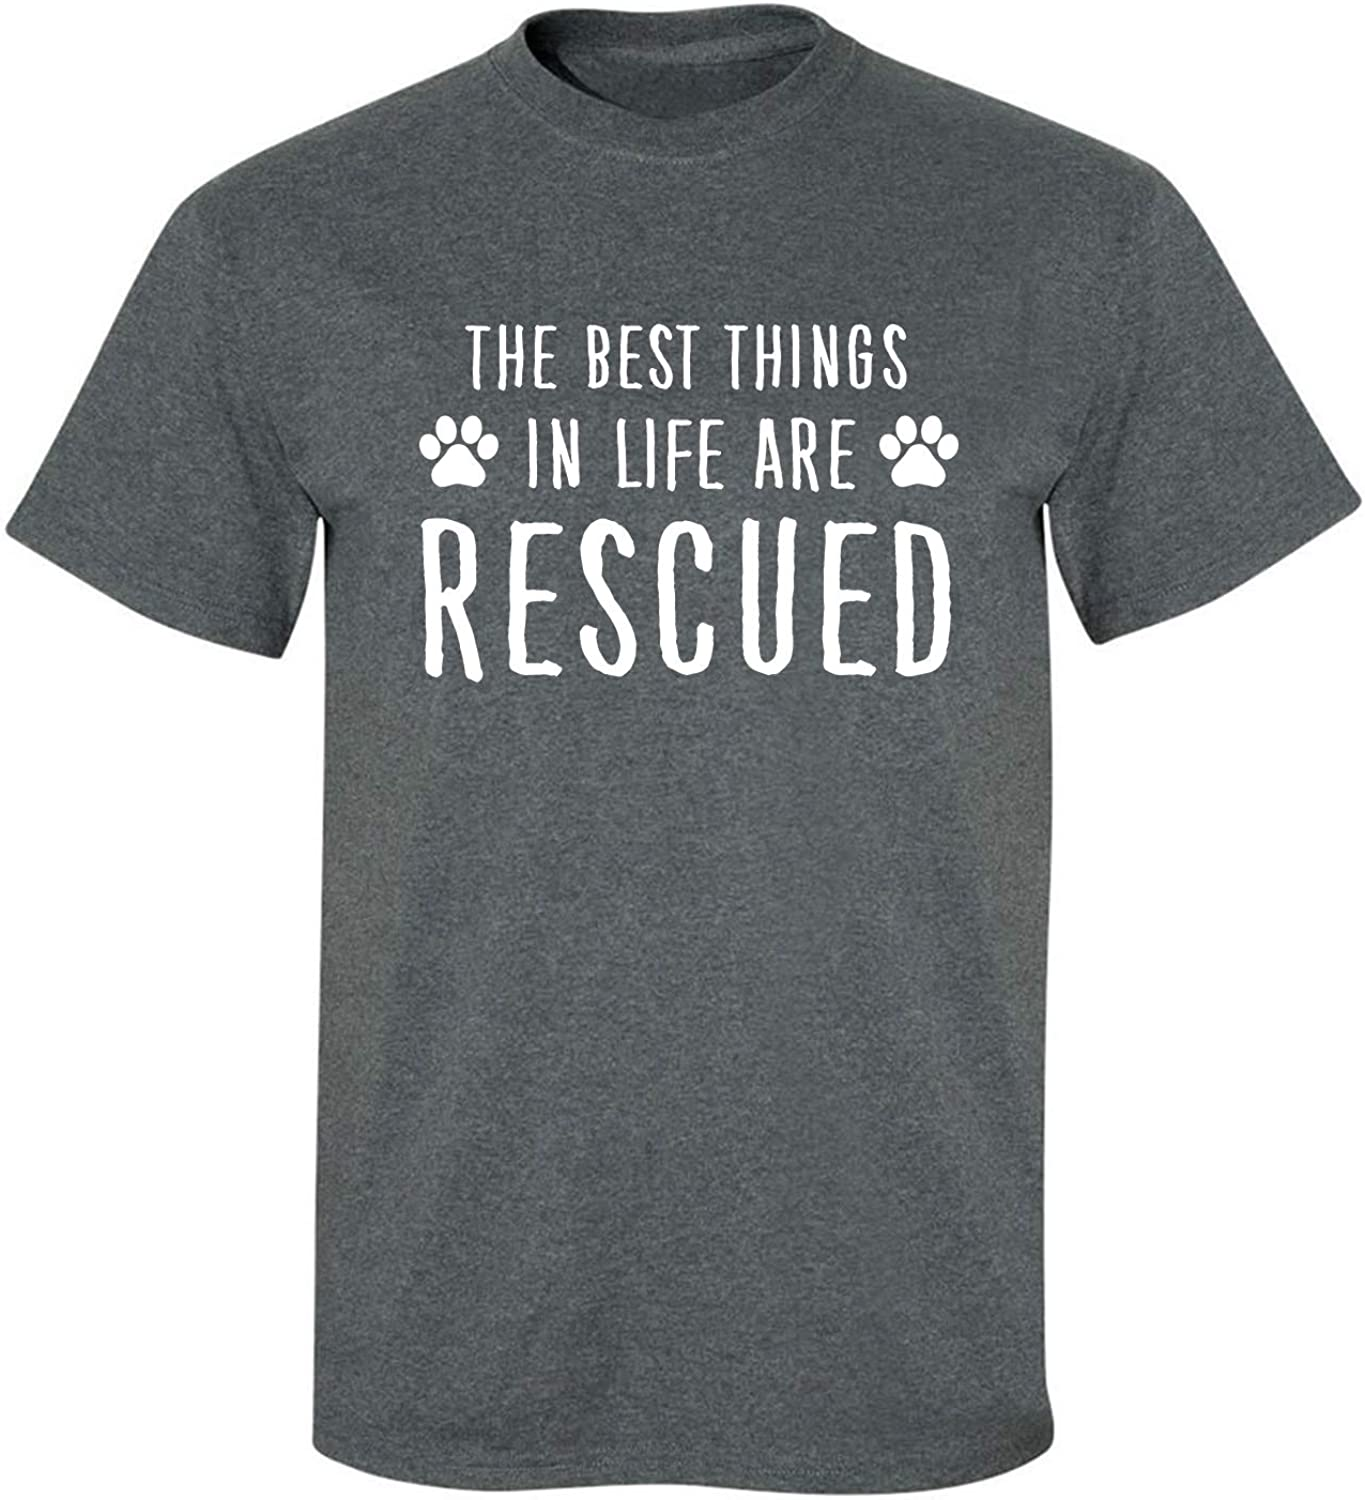 Best Things in Life are Rescued Adult T-Shirt in Dark Heather - XXXXX-Large